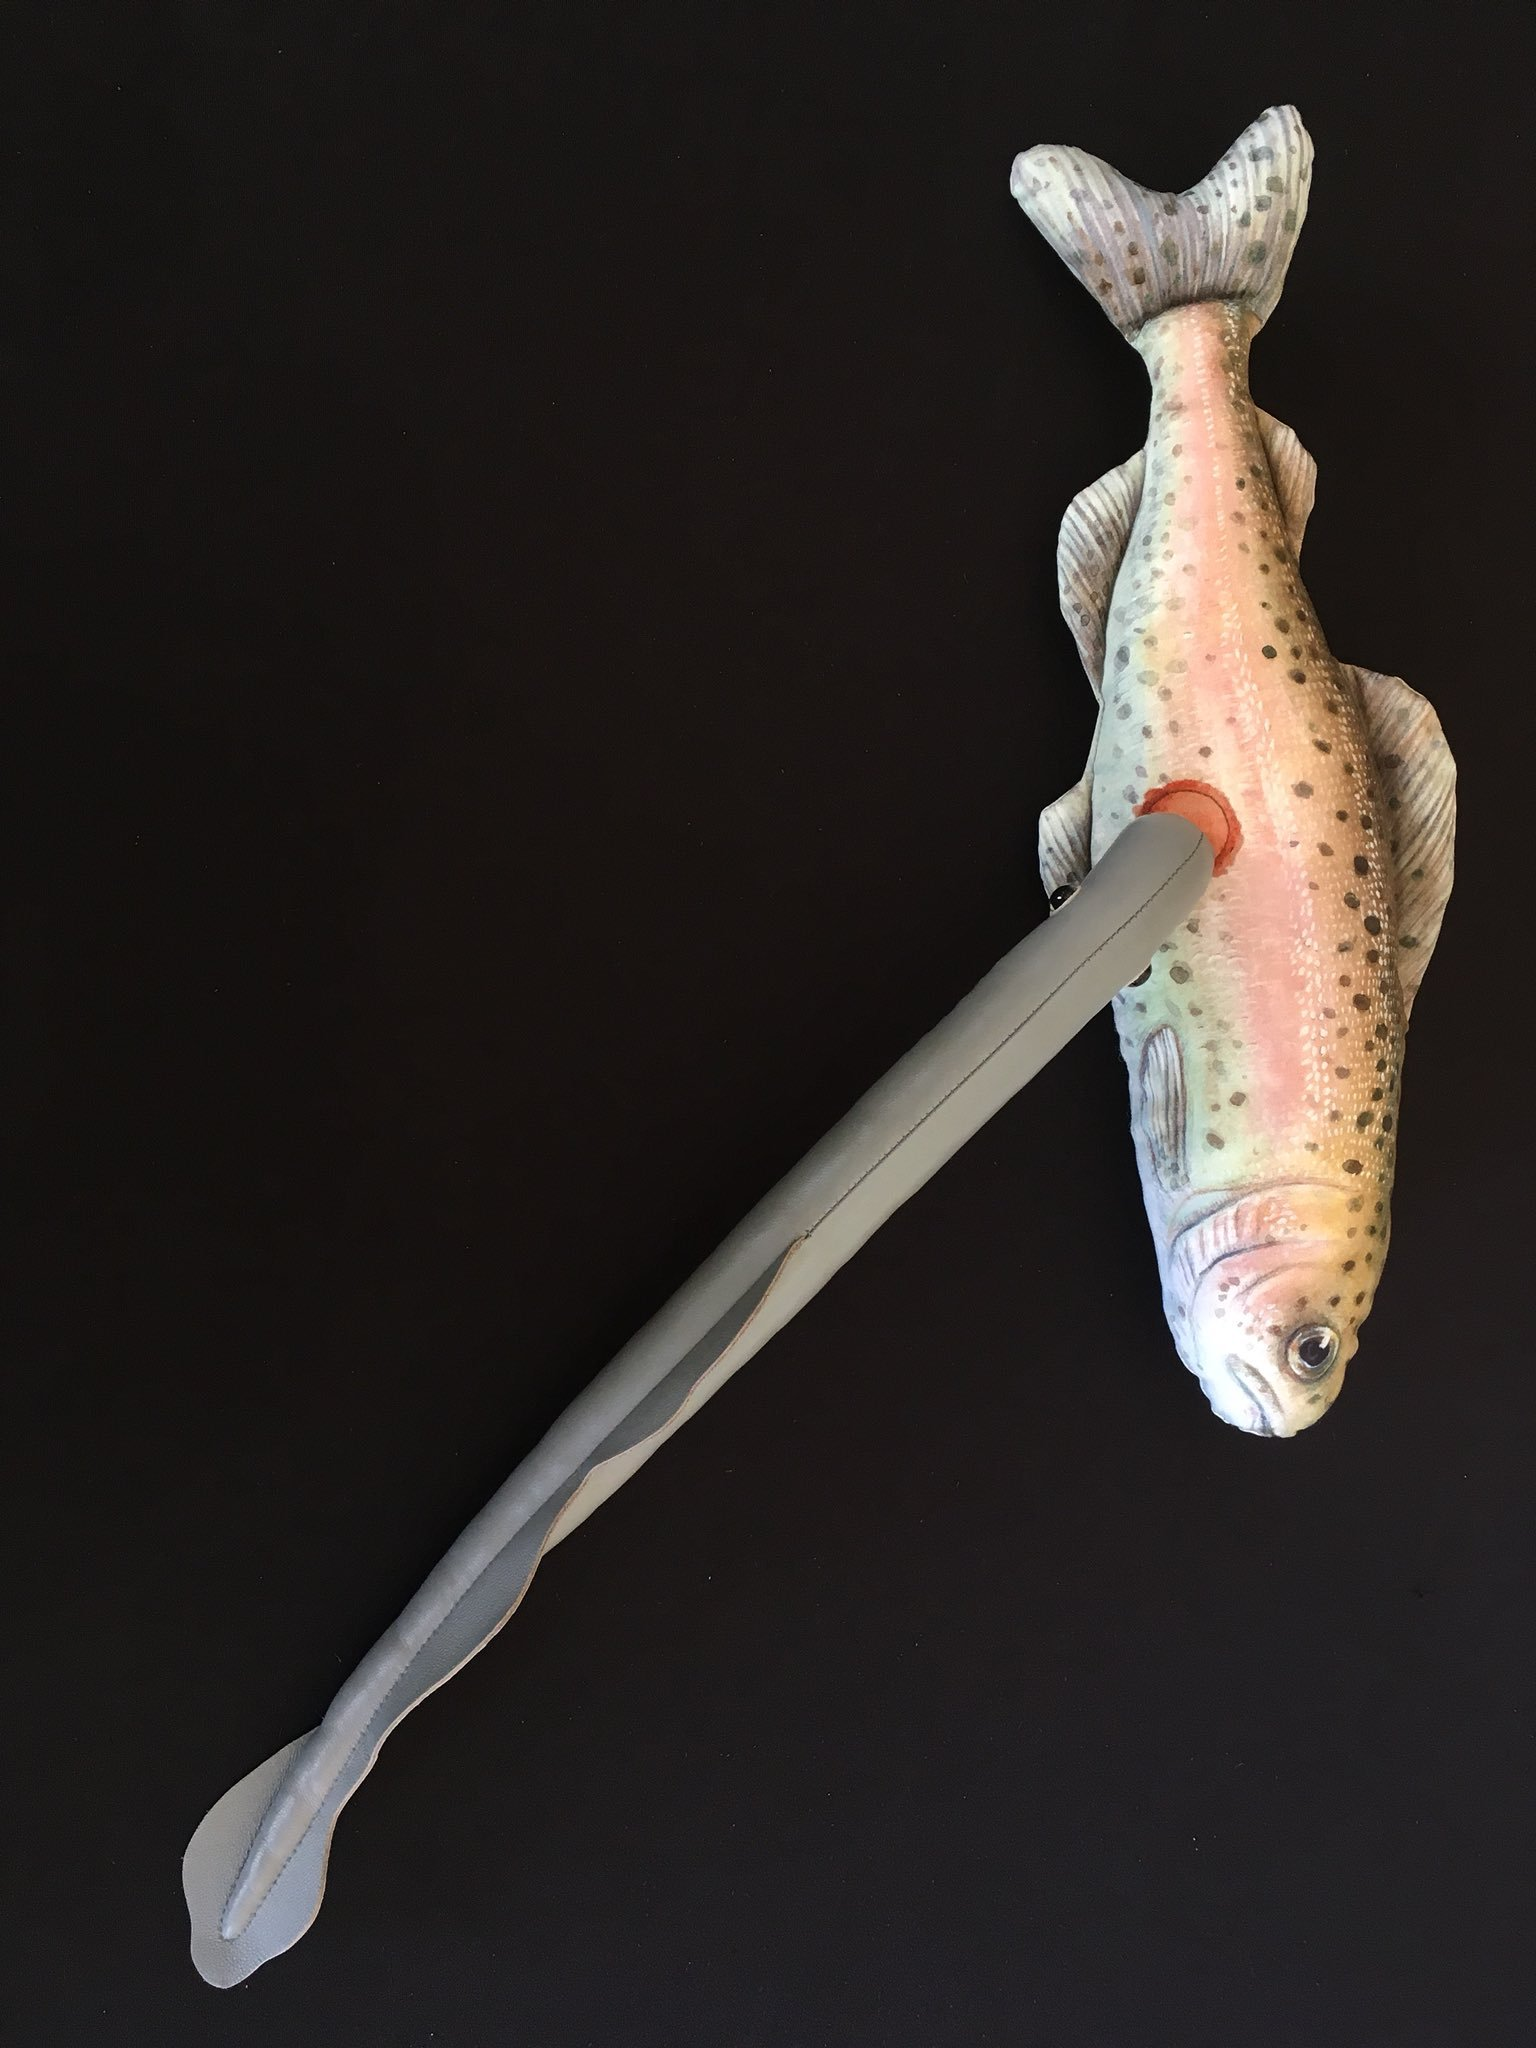 Plush fish with attached parasitic lamprey.